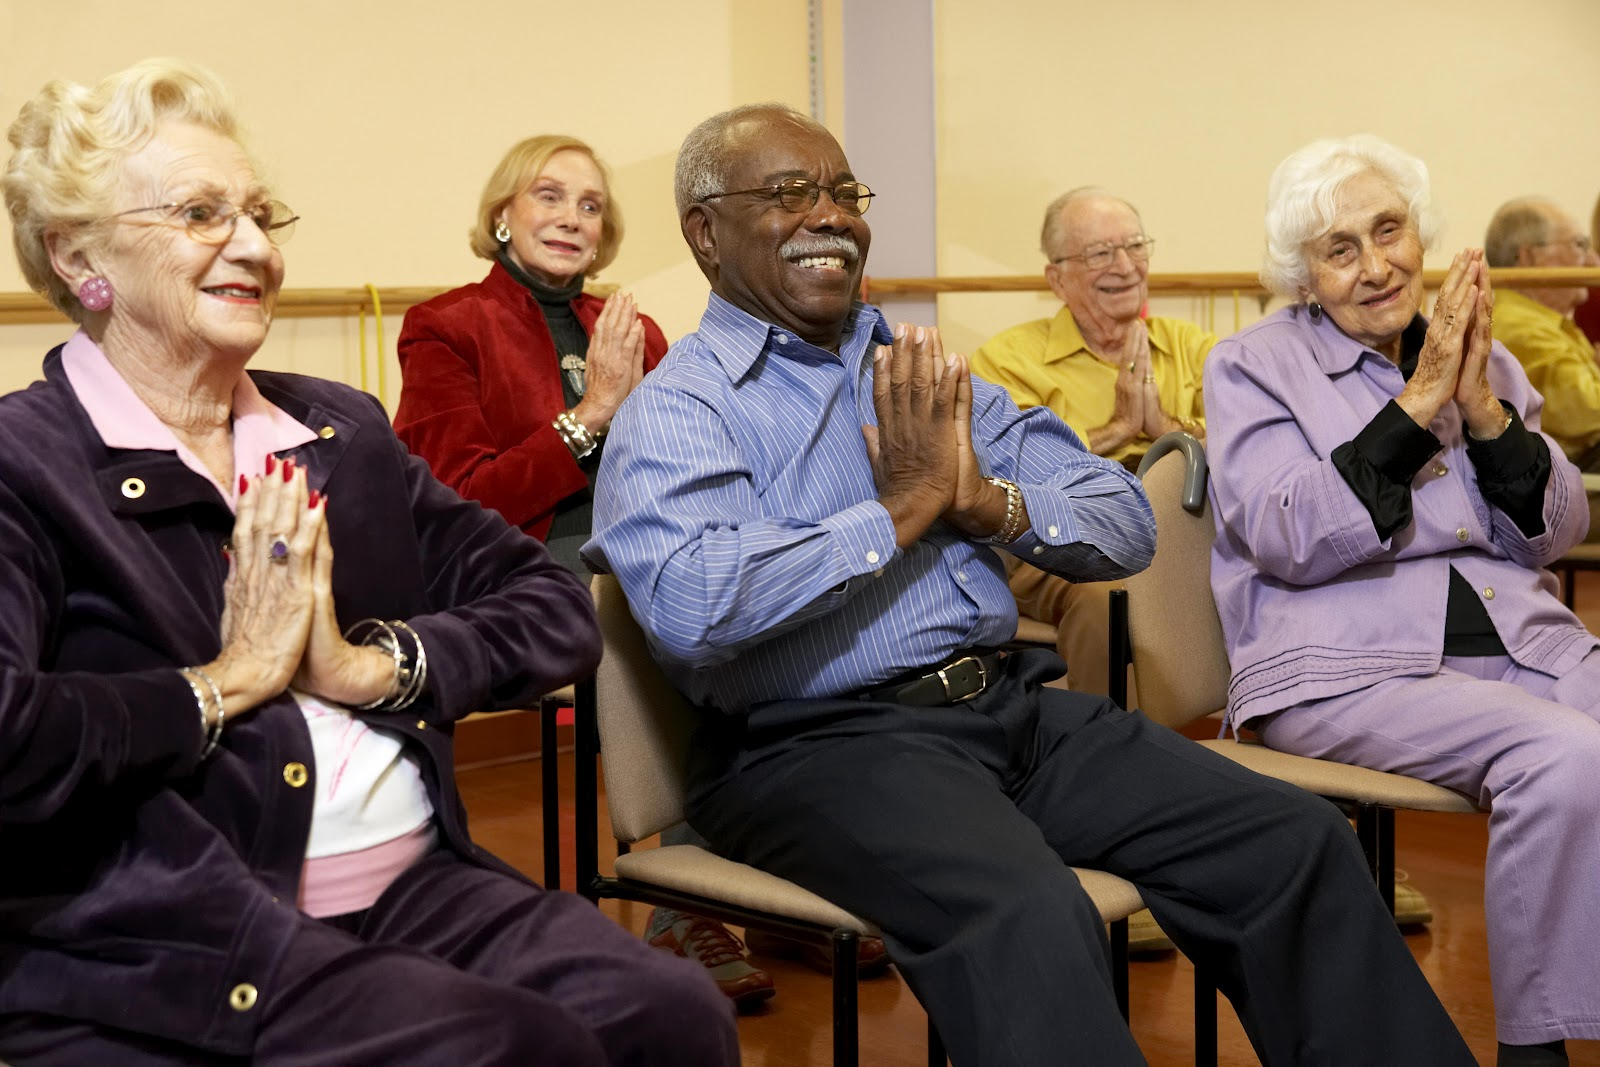 Chair Yoga Amp Chair Tai Chi For Seniors Yoga With Patience